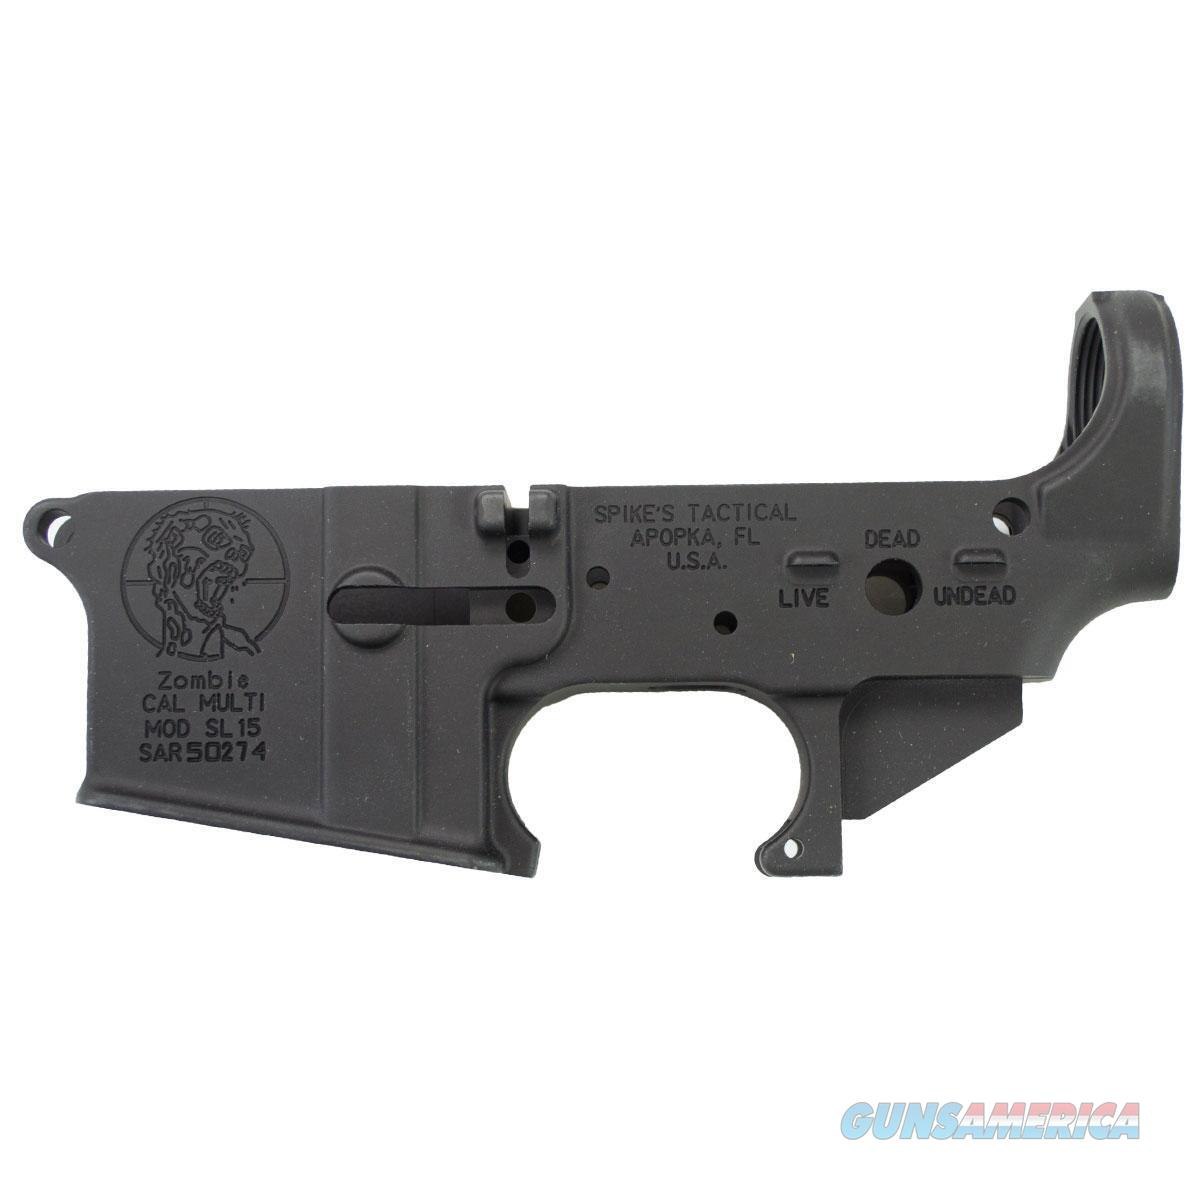 Spikes Tactical AR-15 Forged Stripped Lower Receiver Multi Caliber Forged Zombie Logo Non-Color Filled Aluminum Black  Guns > Rifles > Spikes Tactical Rifles